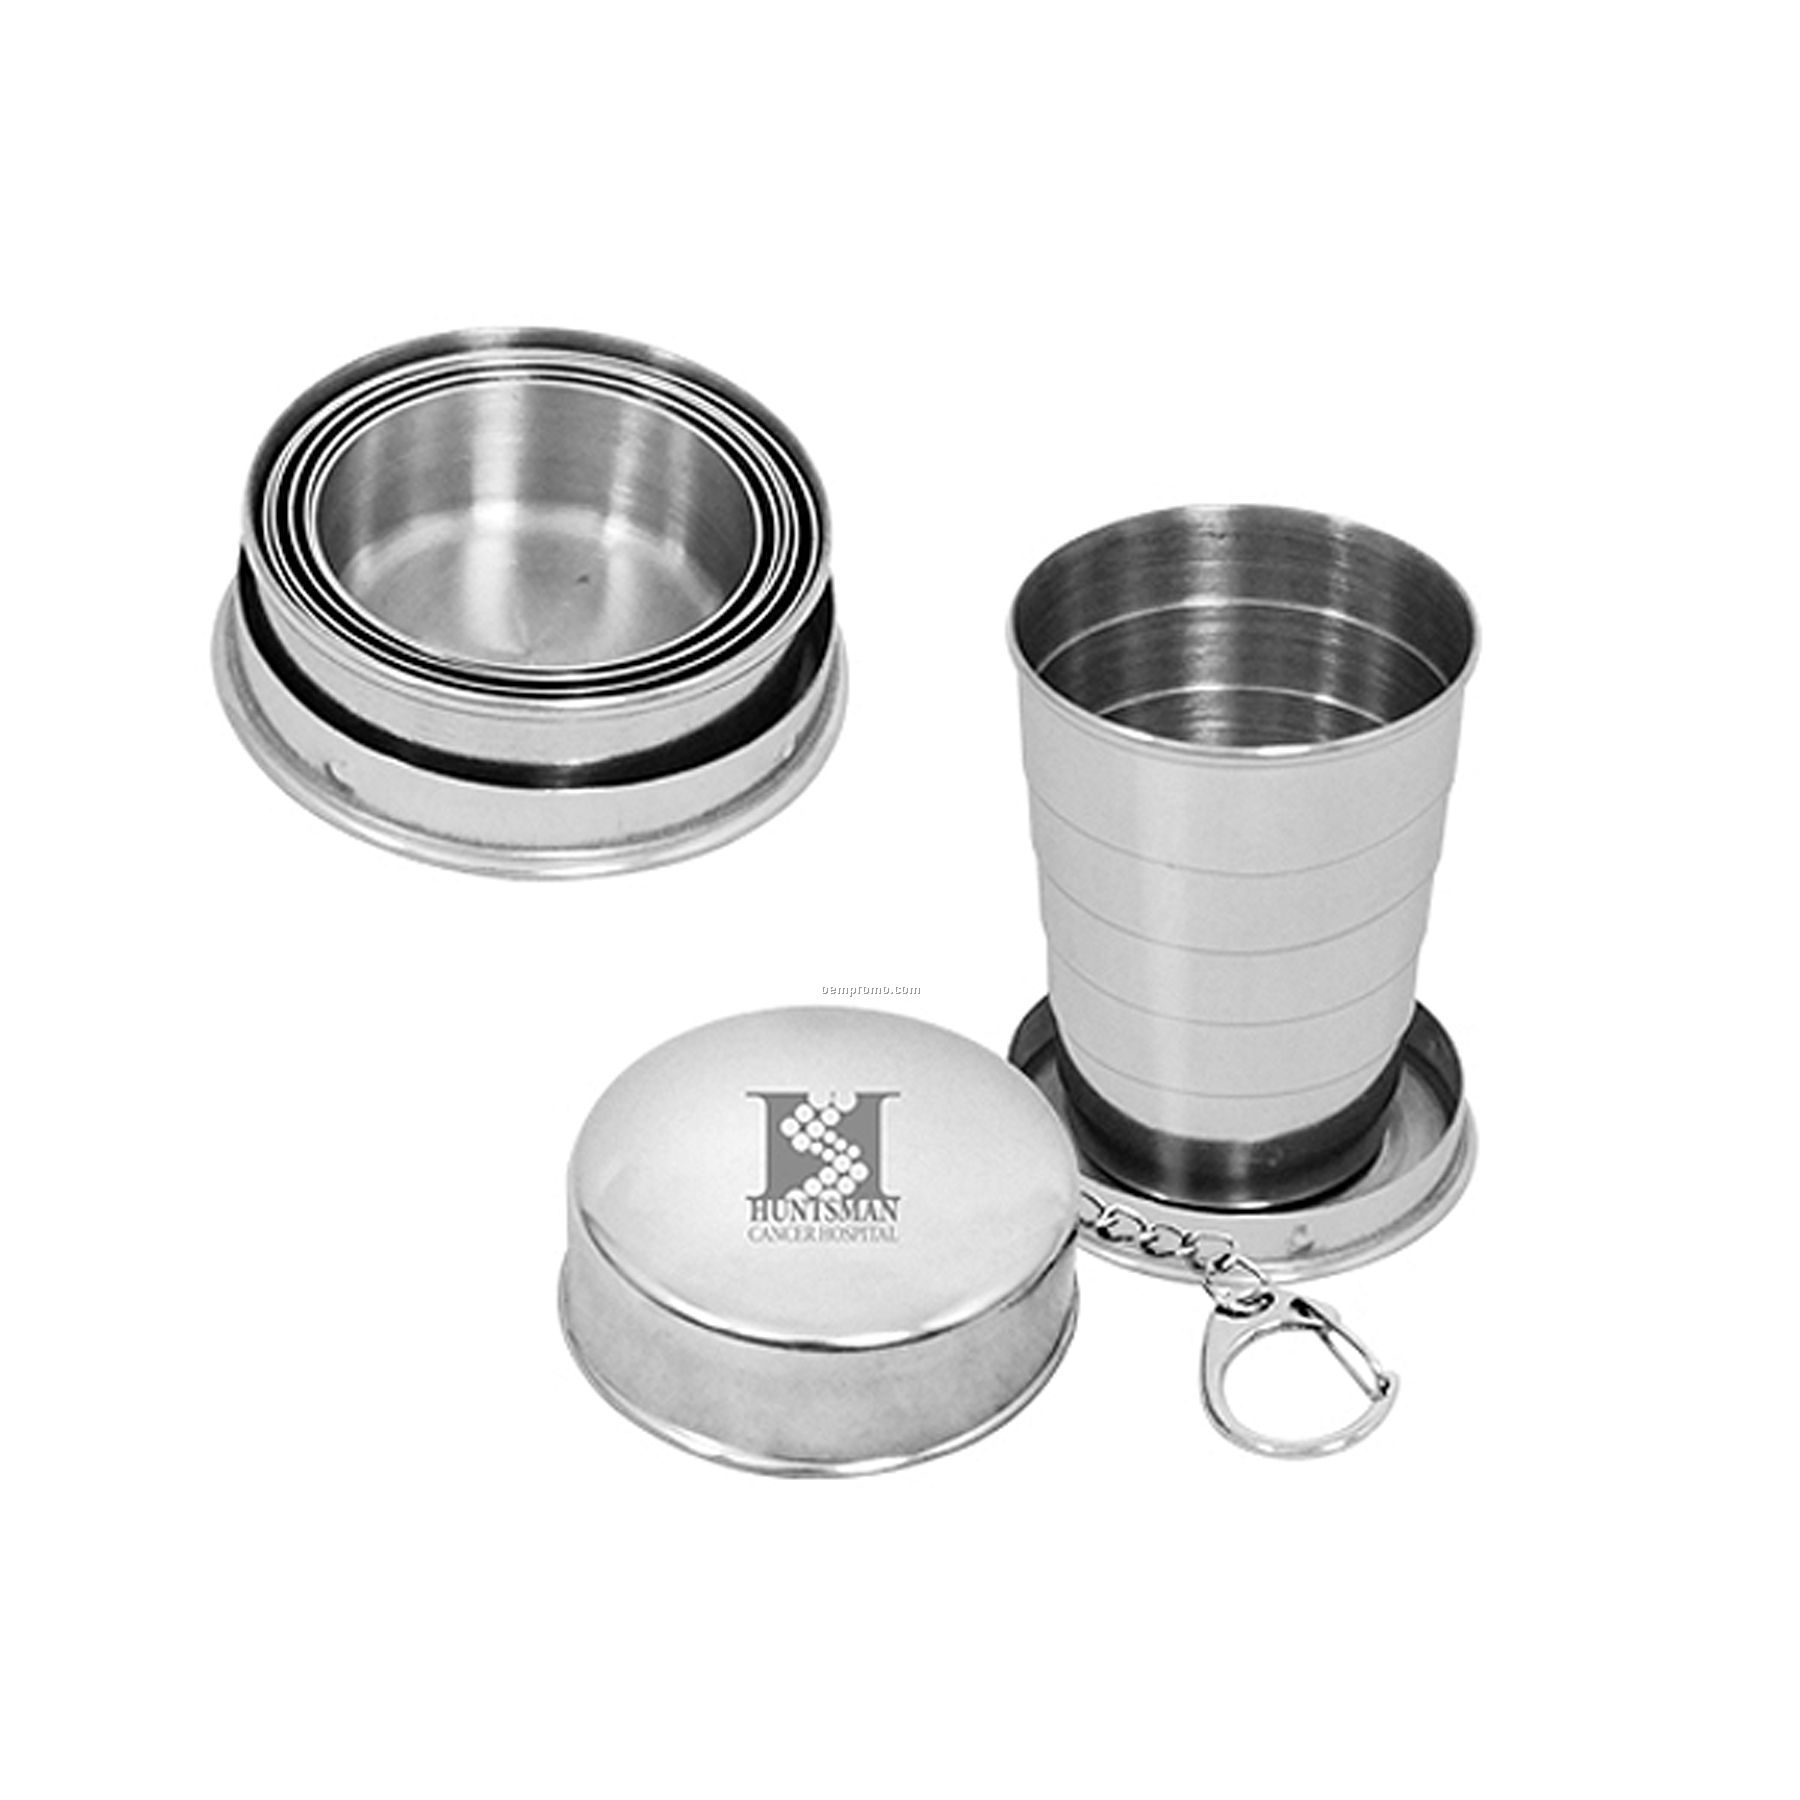 Cavalla 2 Oz Collapsible Cup